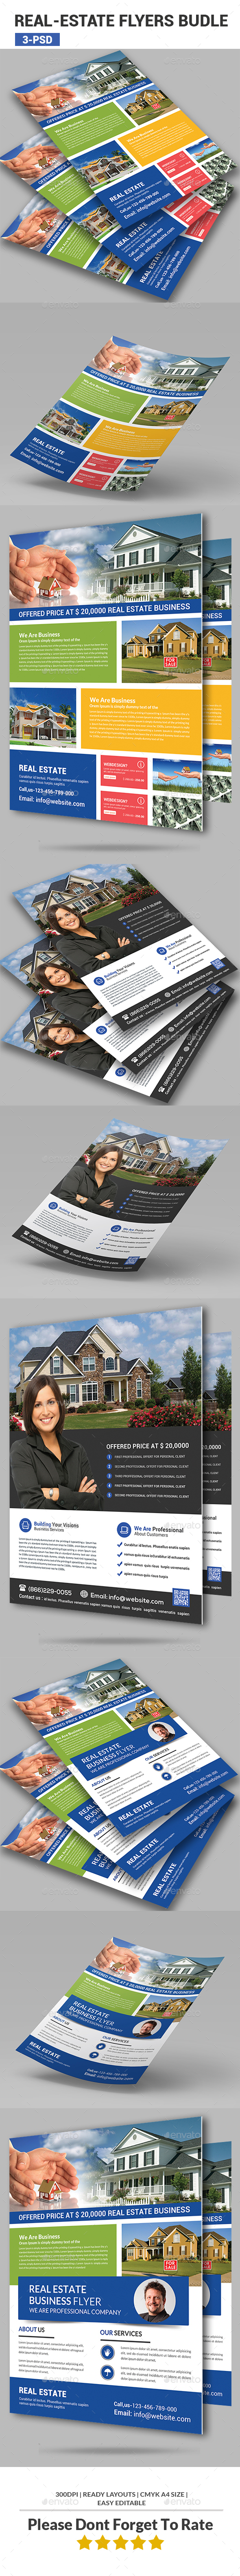 Real Estate Flyers Bundle - Corporate Flyers